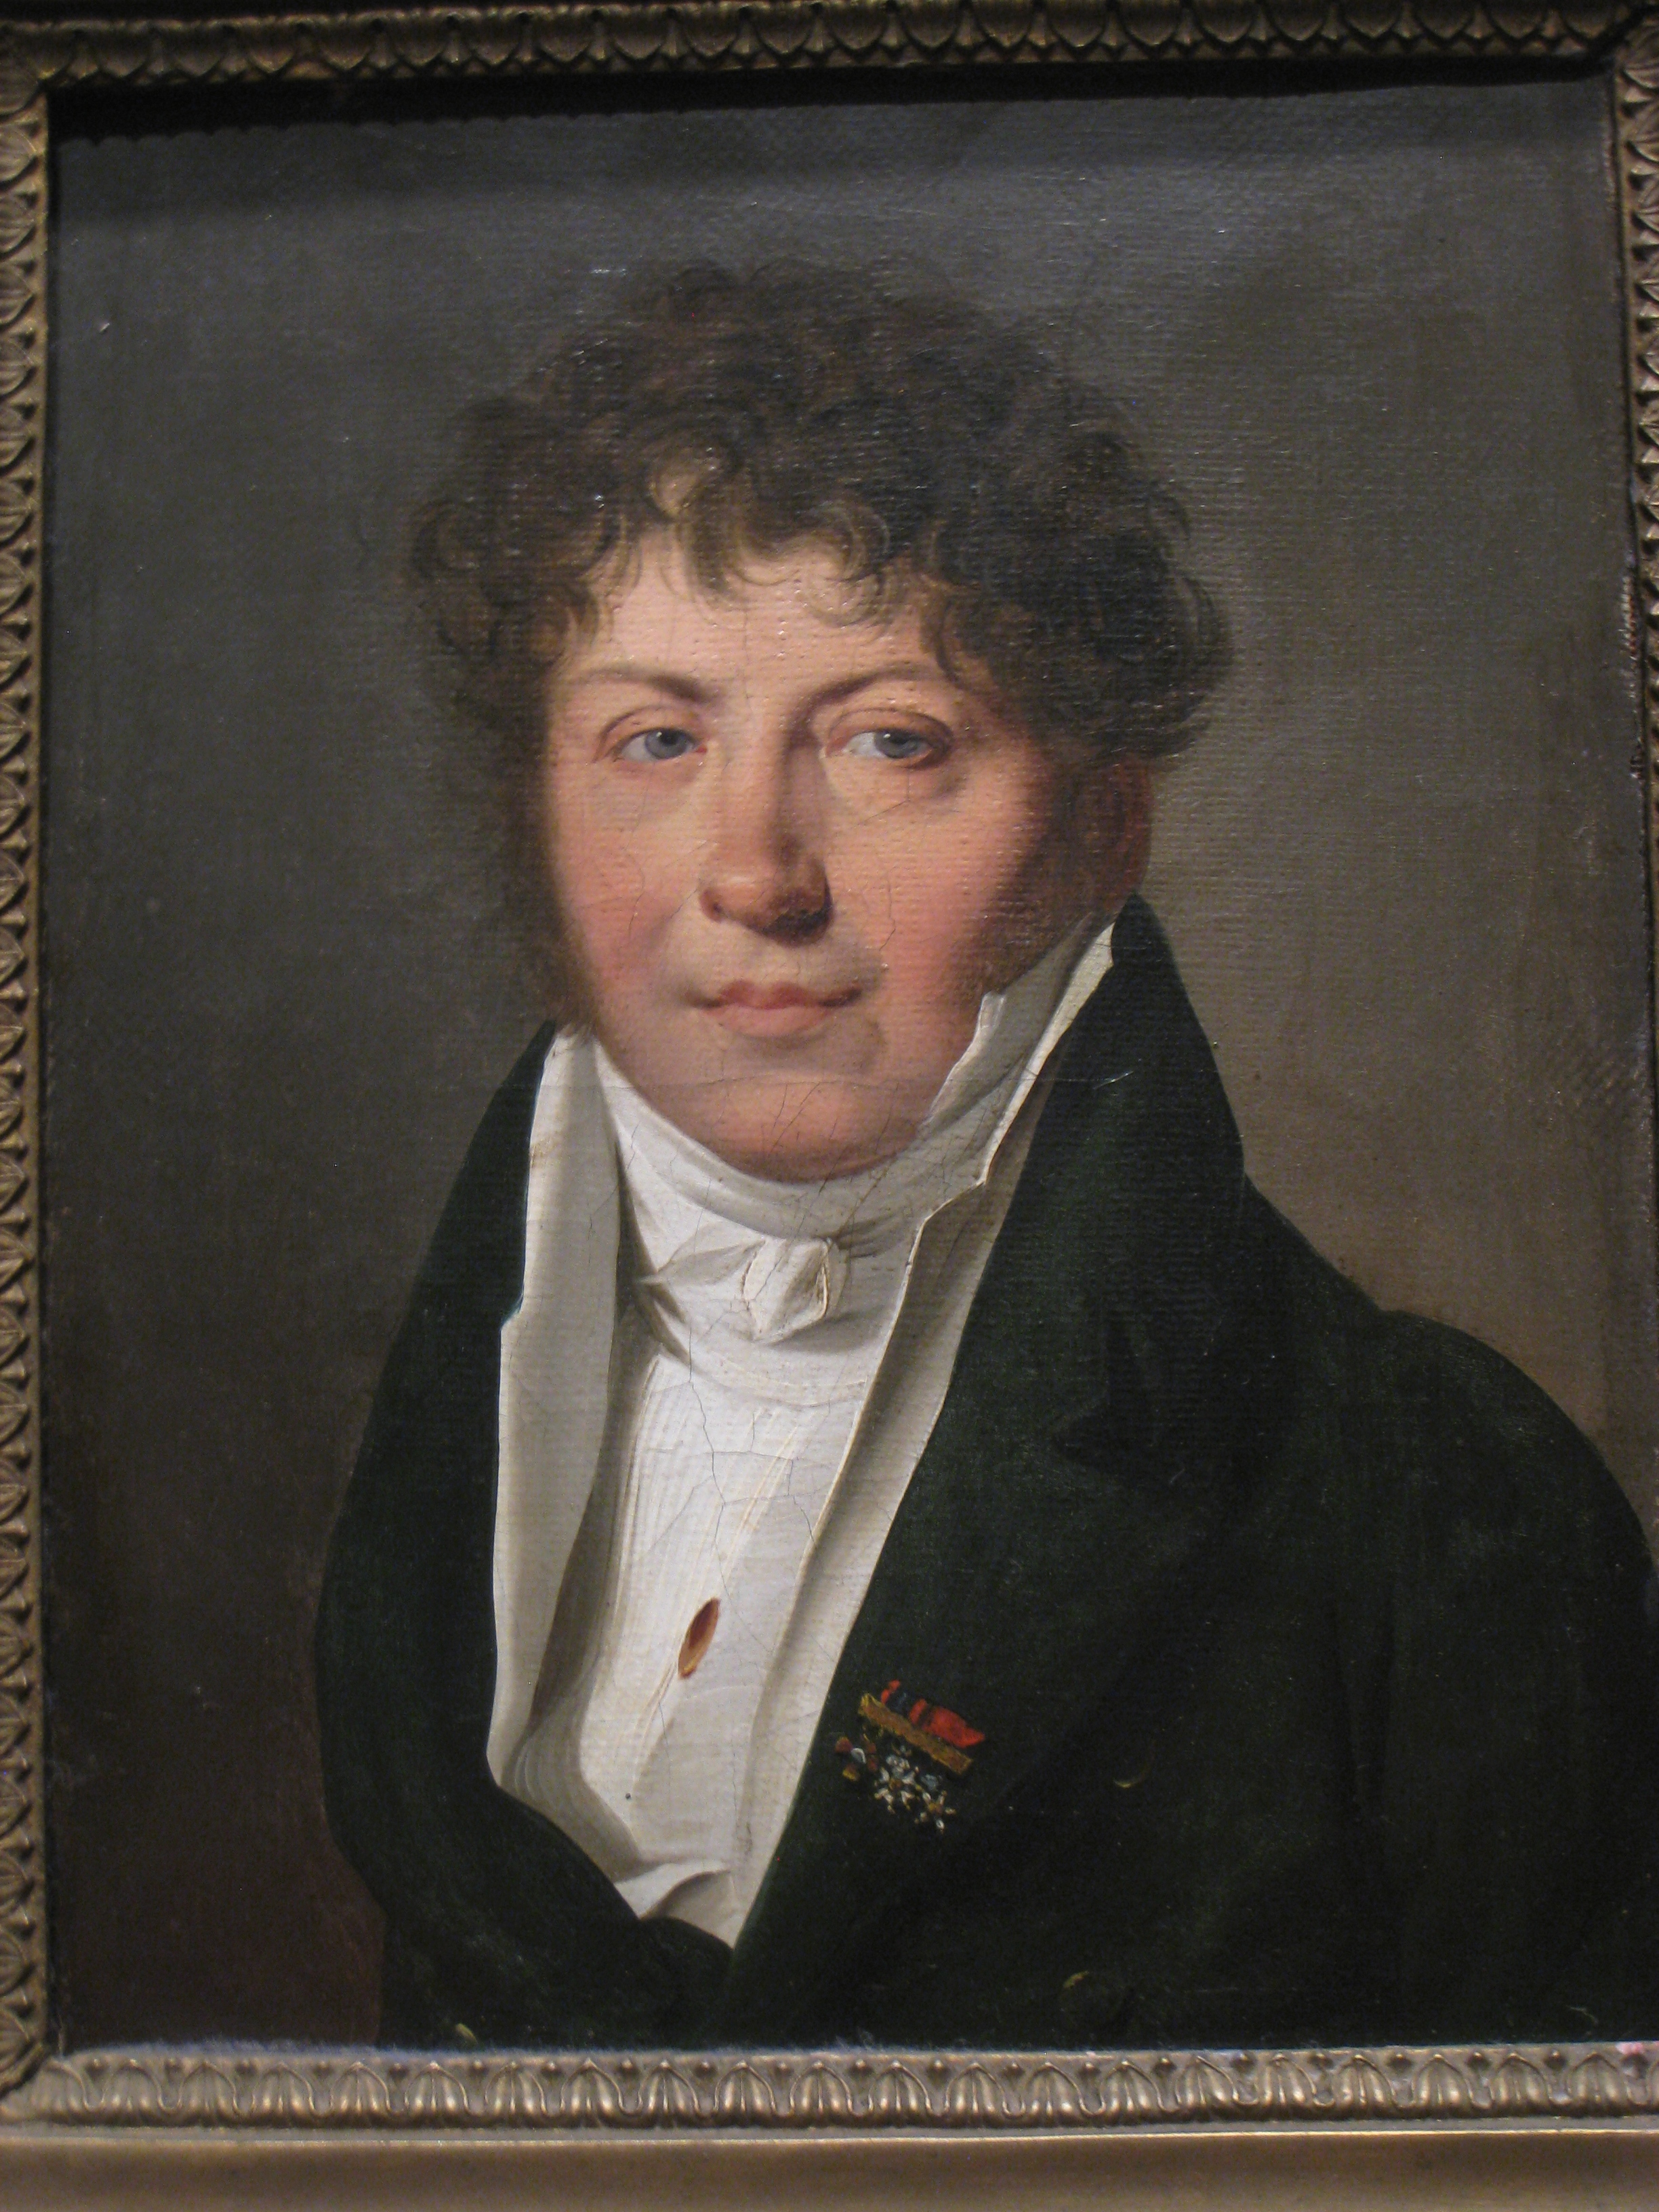 FilePortrait Of A Man By Louis Lopold Boillyjpg